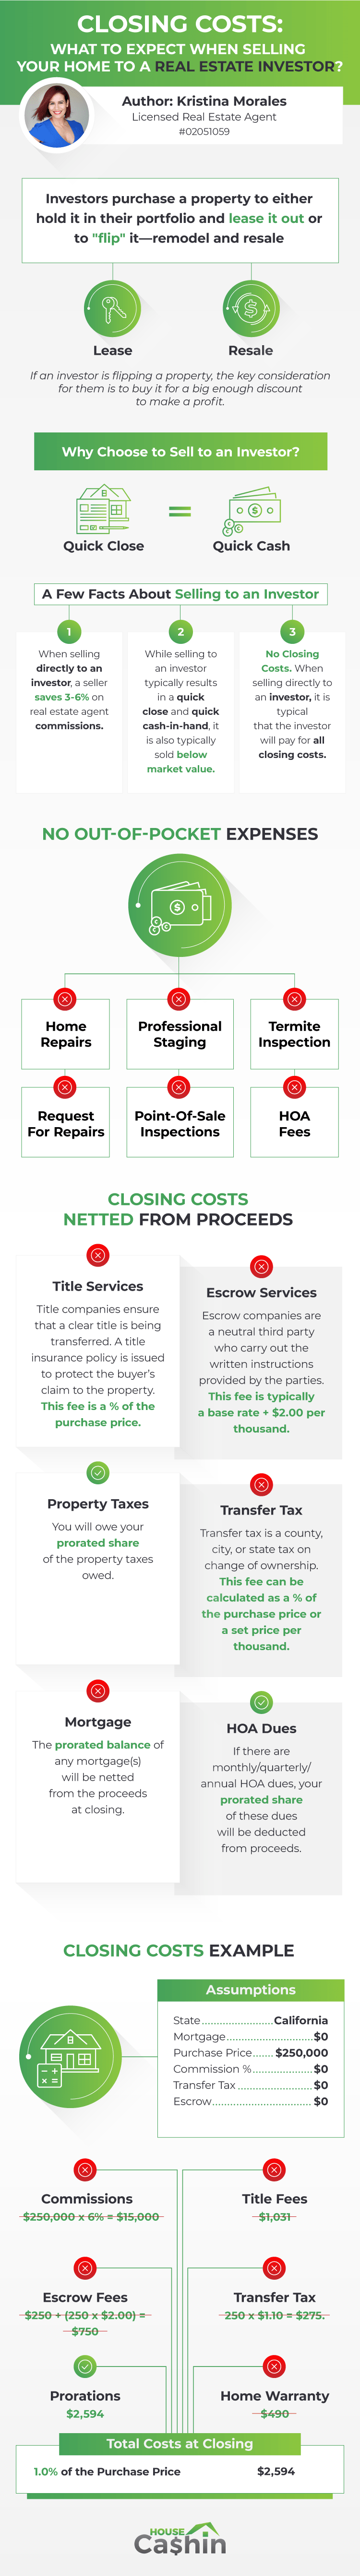 Infographic: Closing Costs when Selling a House to an Investor